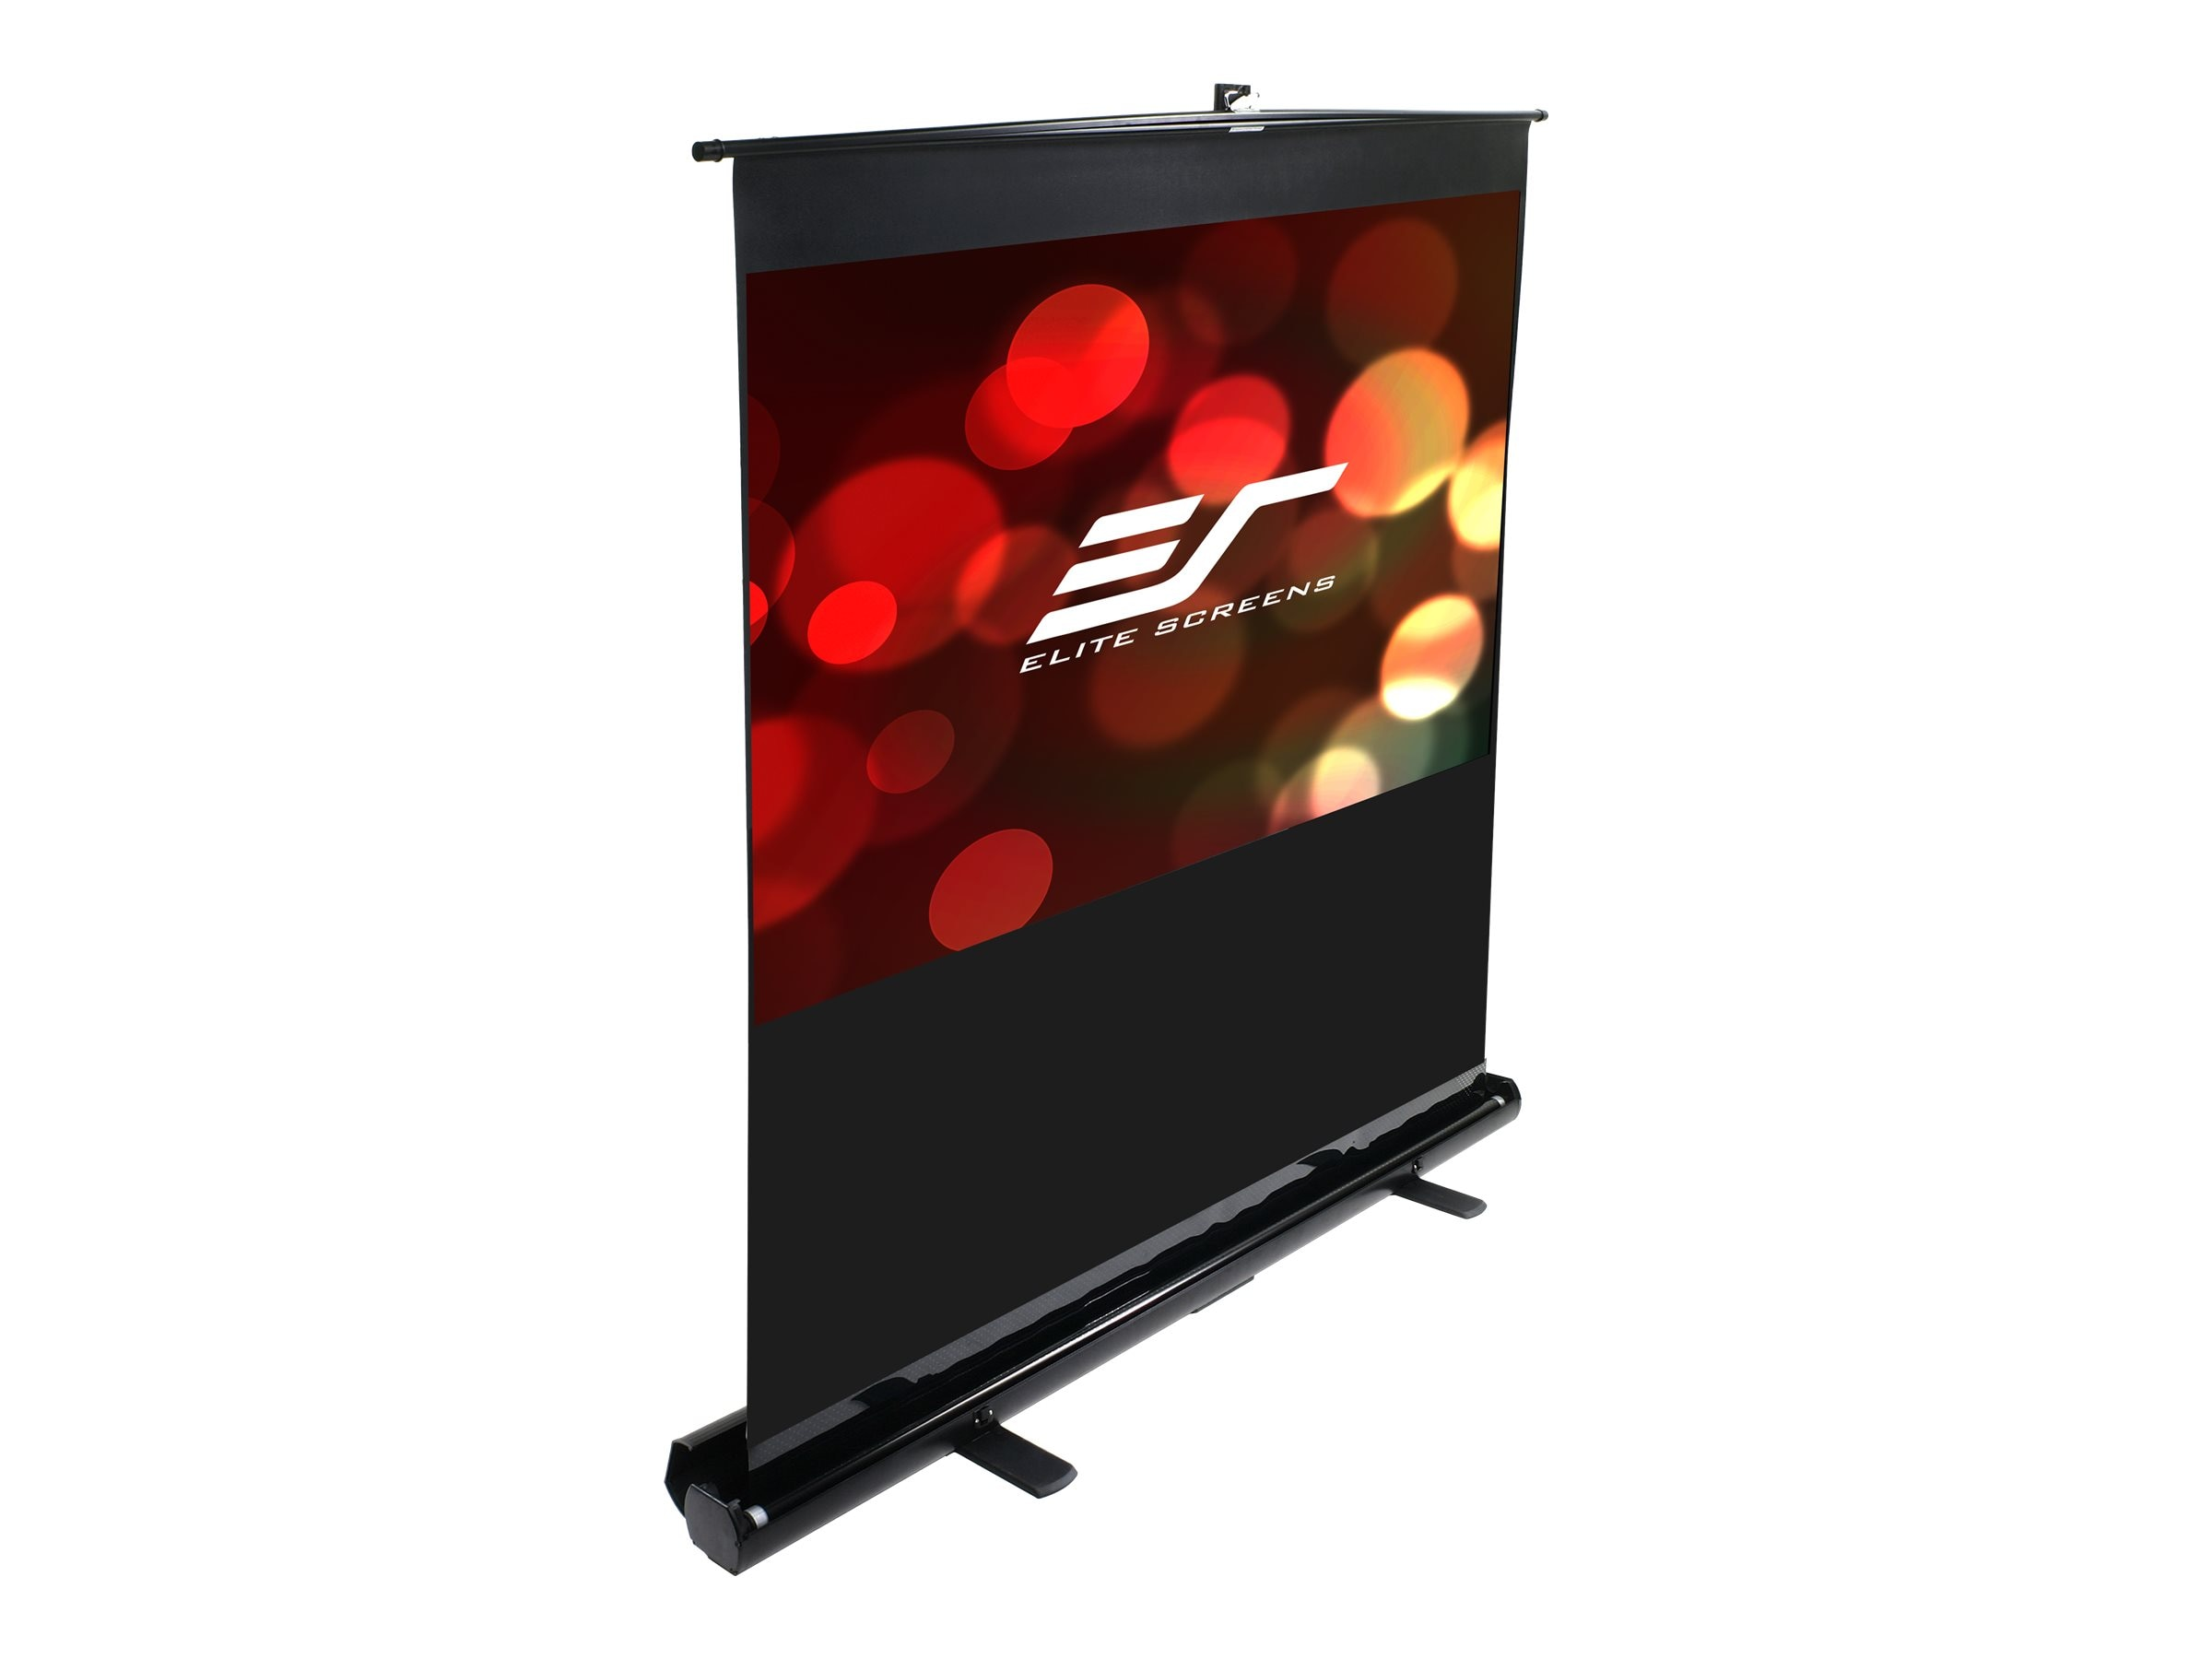 Elite ez-Cinema Series Matte White Portable Projection Screen, 4:3, 100in, F100NWV, 6298602, Projector Screens